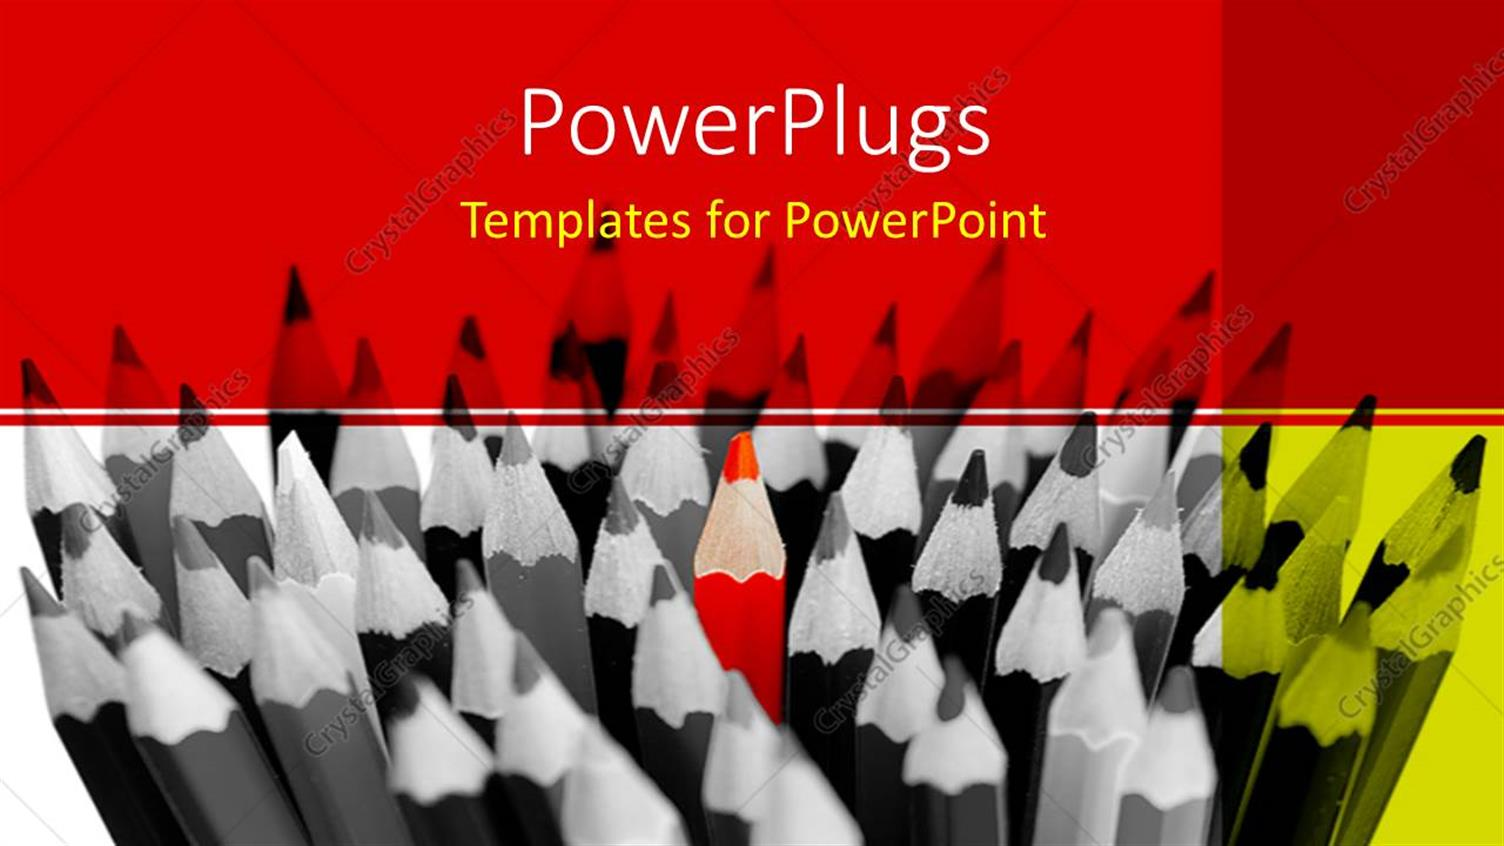 PowerPoint Template Displaying Black and White View of a Bunch of Color Pencils